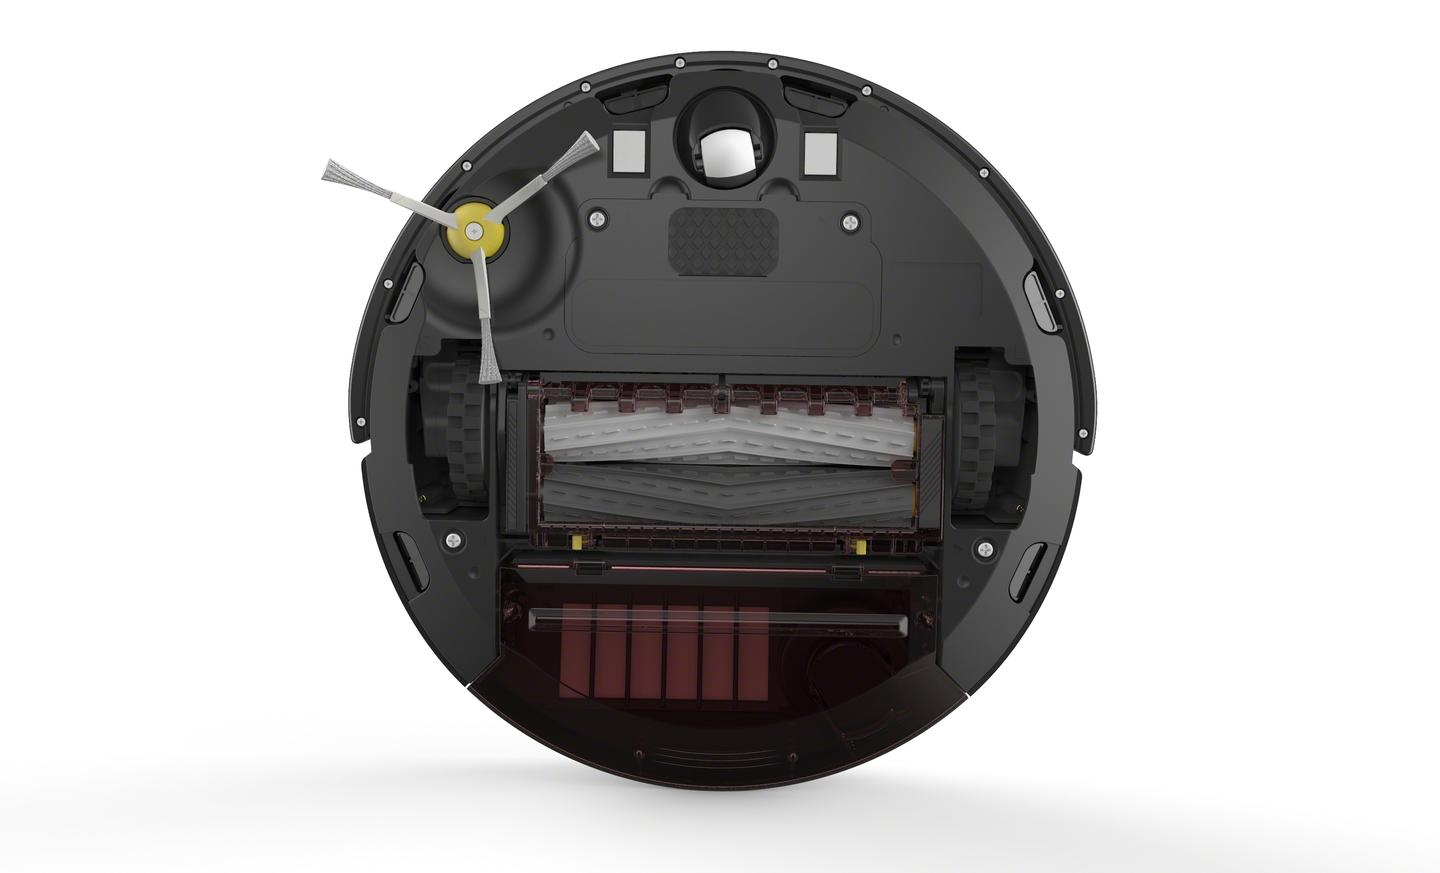 The underside of the Roomba 800 Series